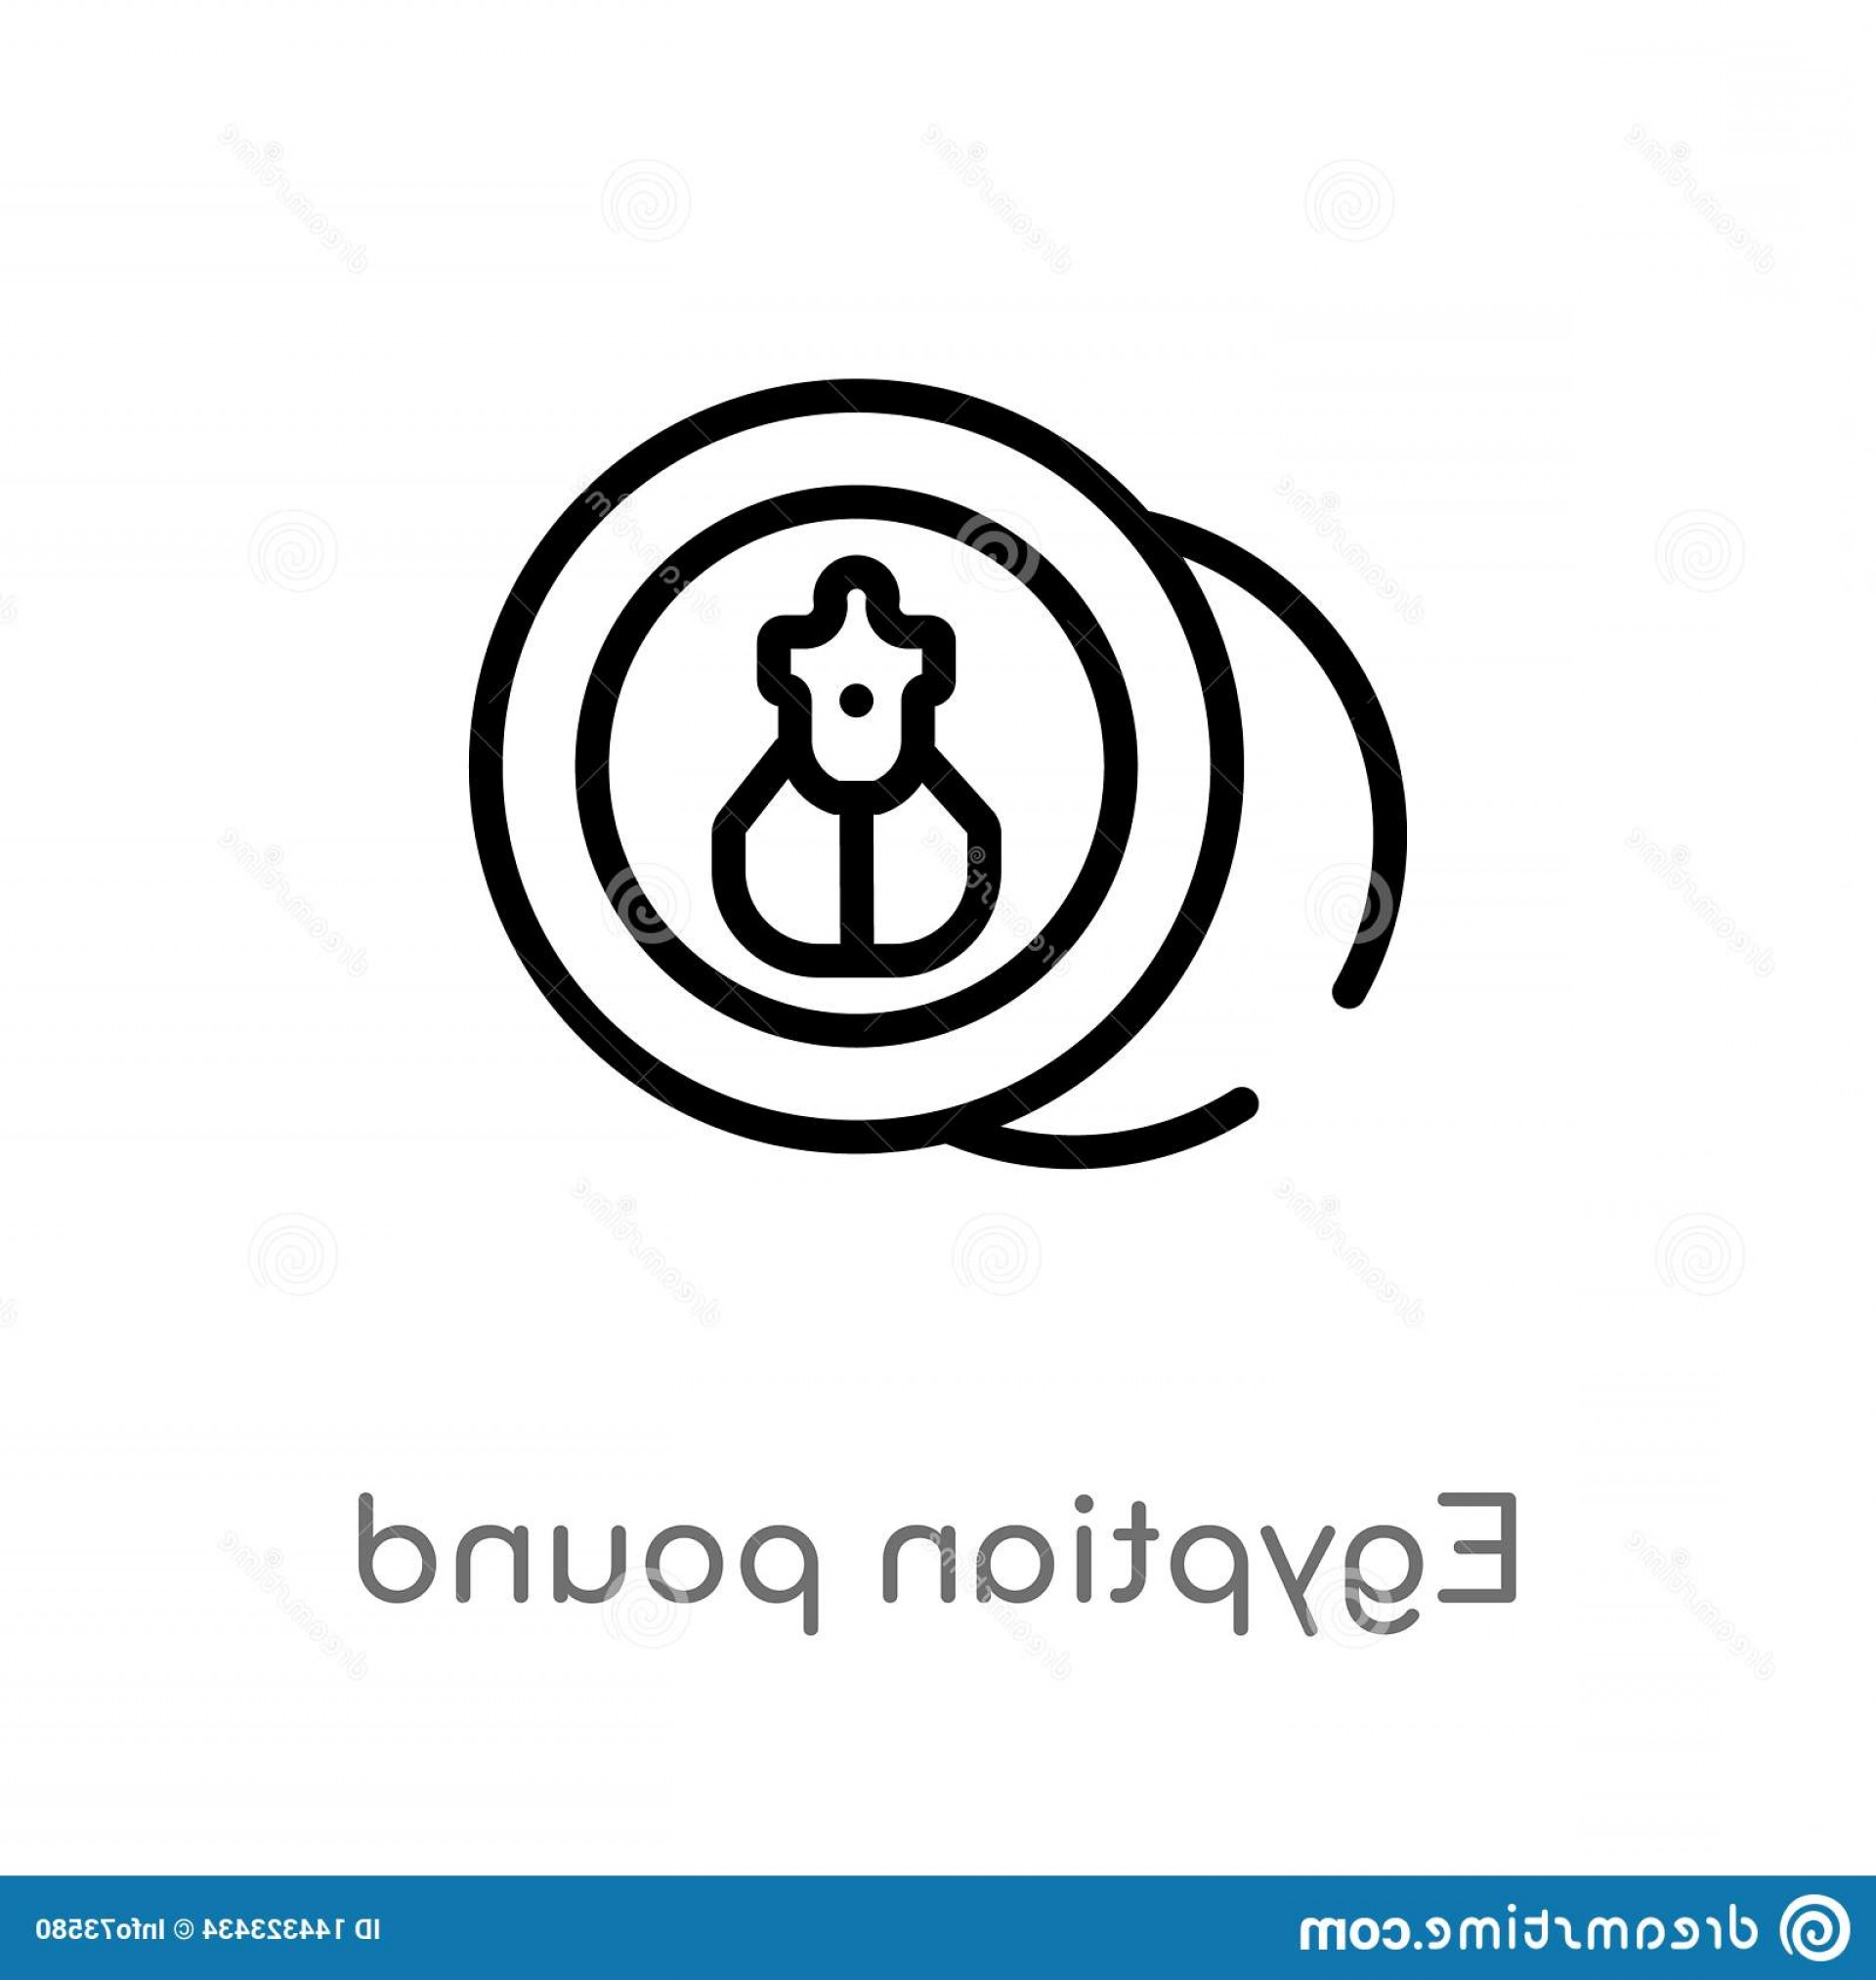 Egyptian Money Symbol Vector: Outline Egyptian Pound Vector Icon Isolated Black Simple Line Element Illustration Africa Concept Editable Stroke White Image